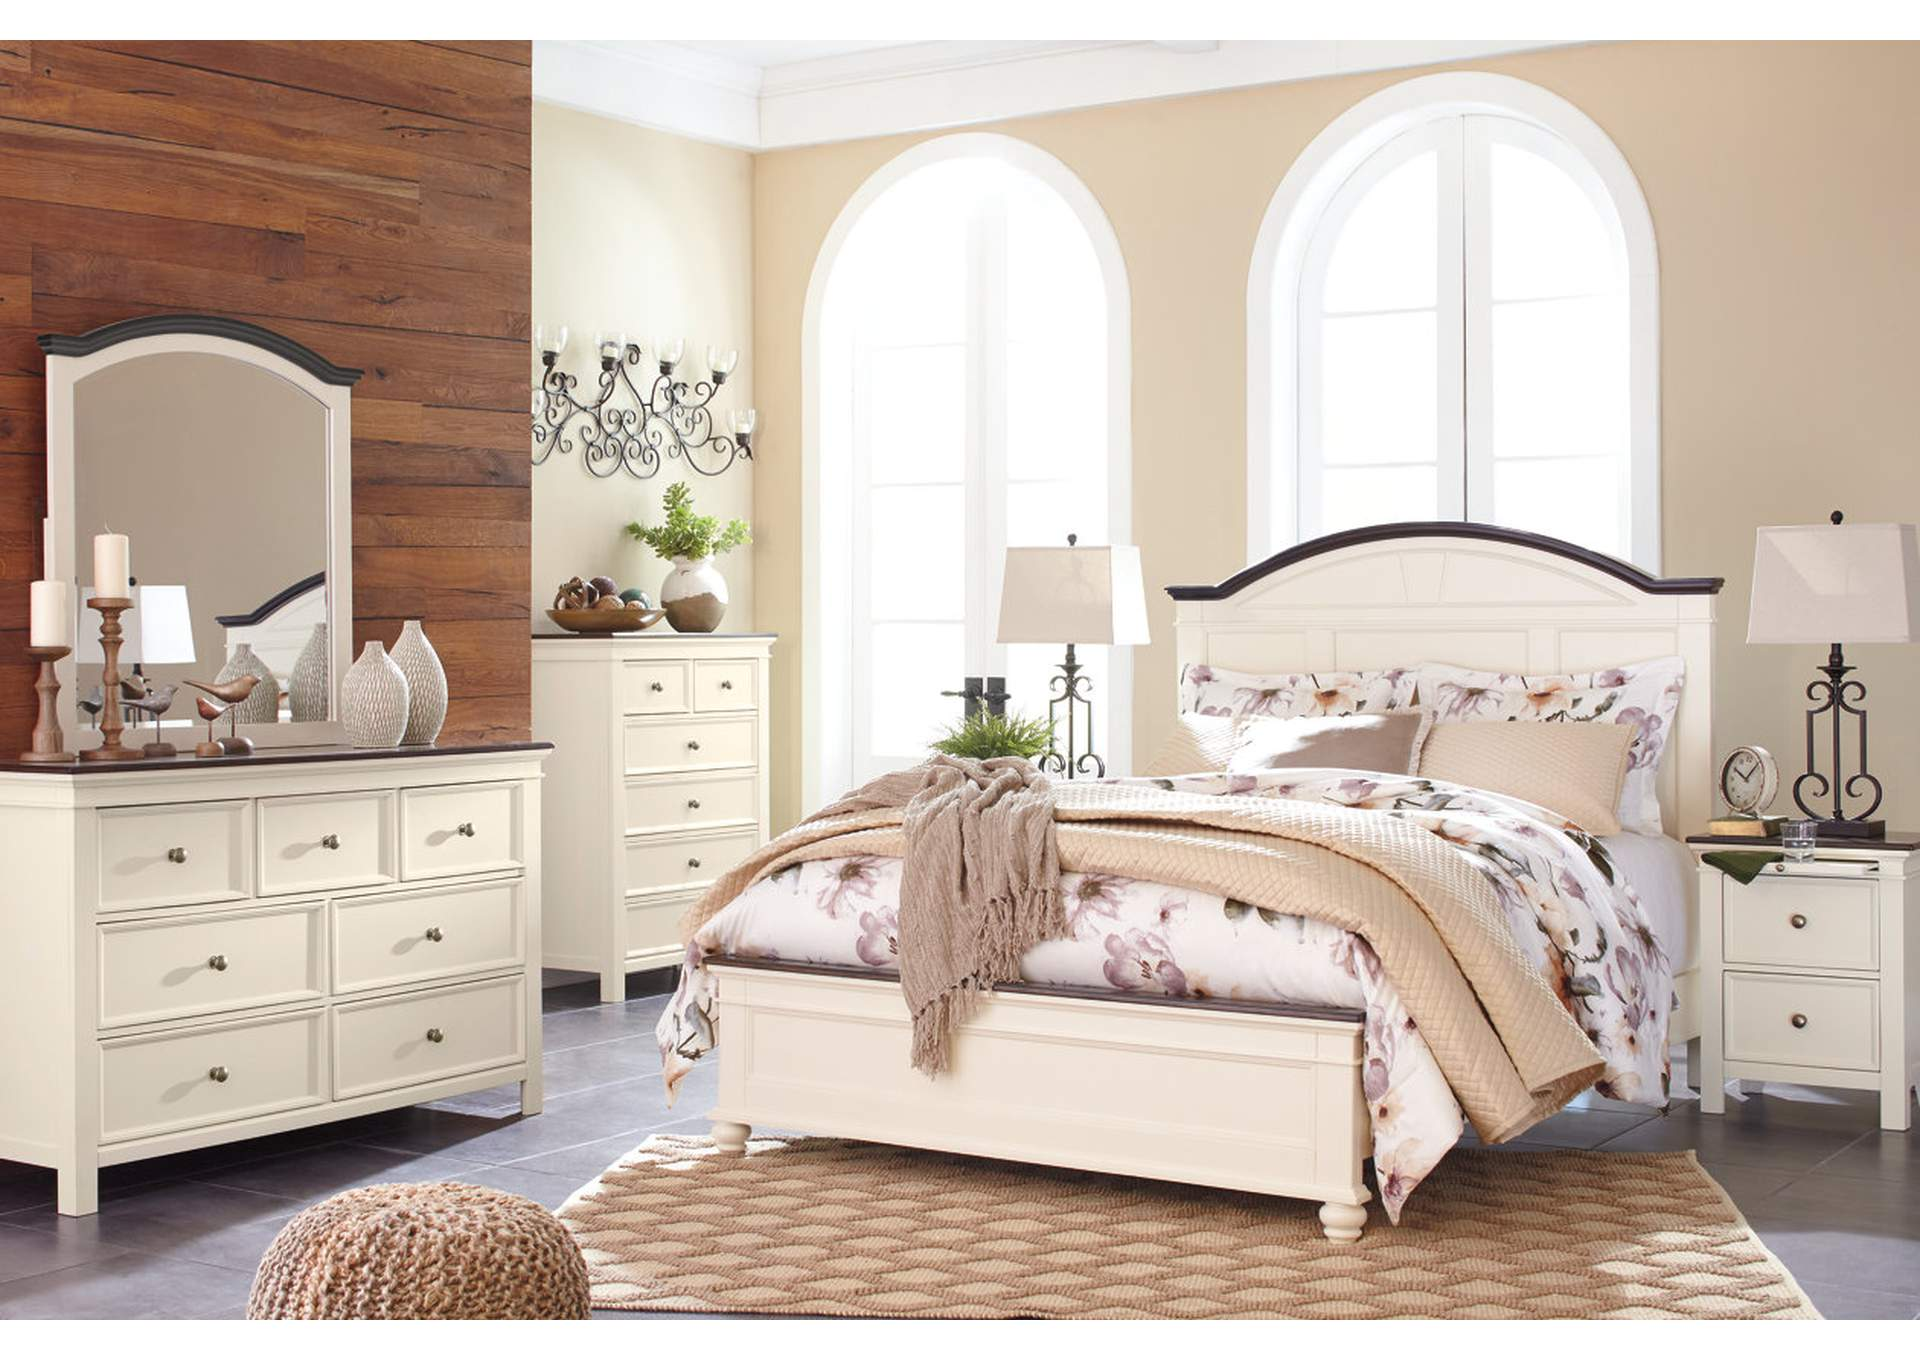 Woodanville White/Brown King Panel Bed w/Dresser, Mirror & Drawer Chest,Signature Design By Ashley